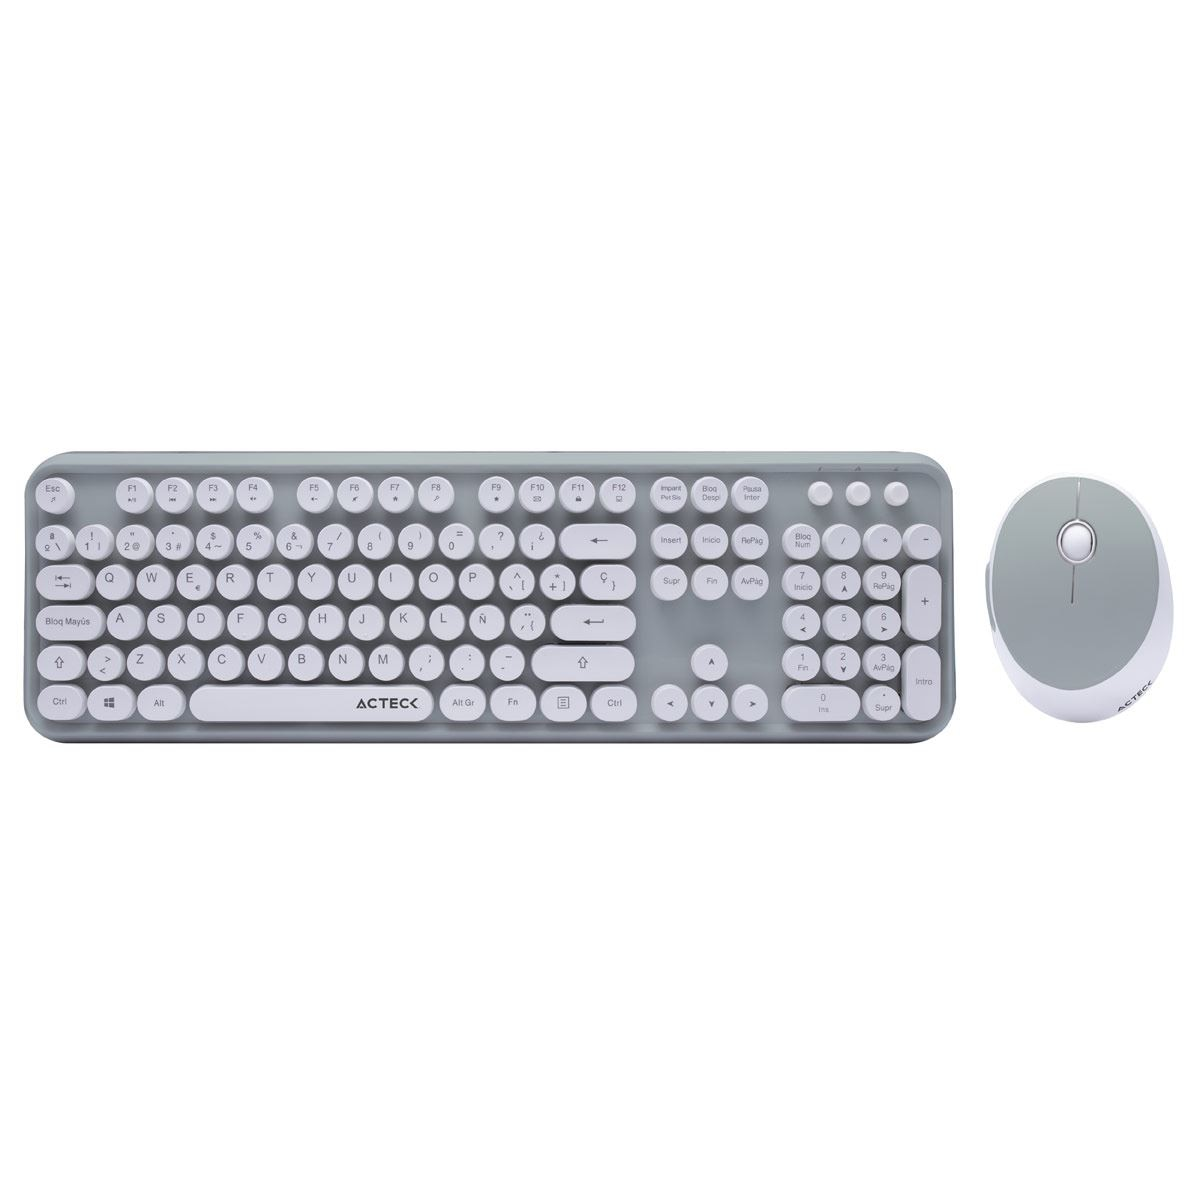 Kit Teclado y Mouse Retro RK110 Aqua Acteck